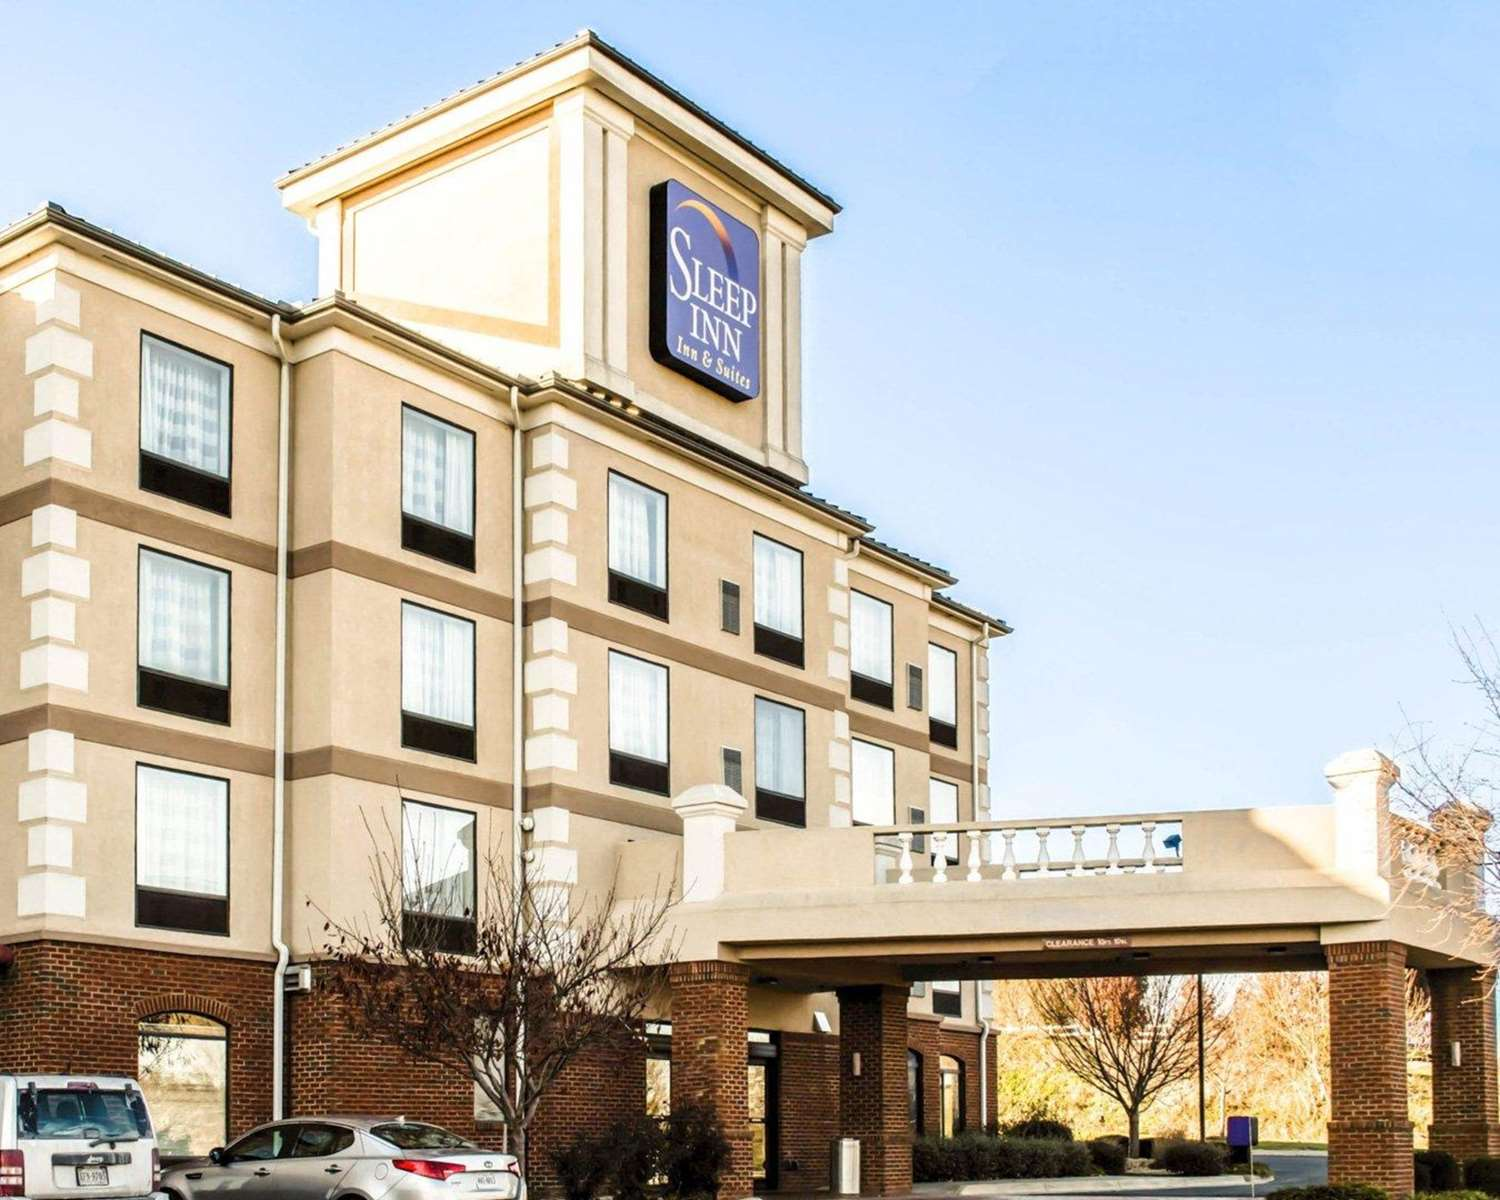 Sleep Inn Inn & Suites Lexington